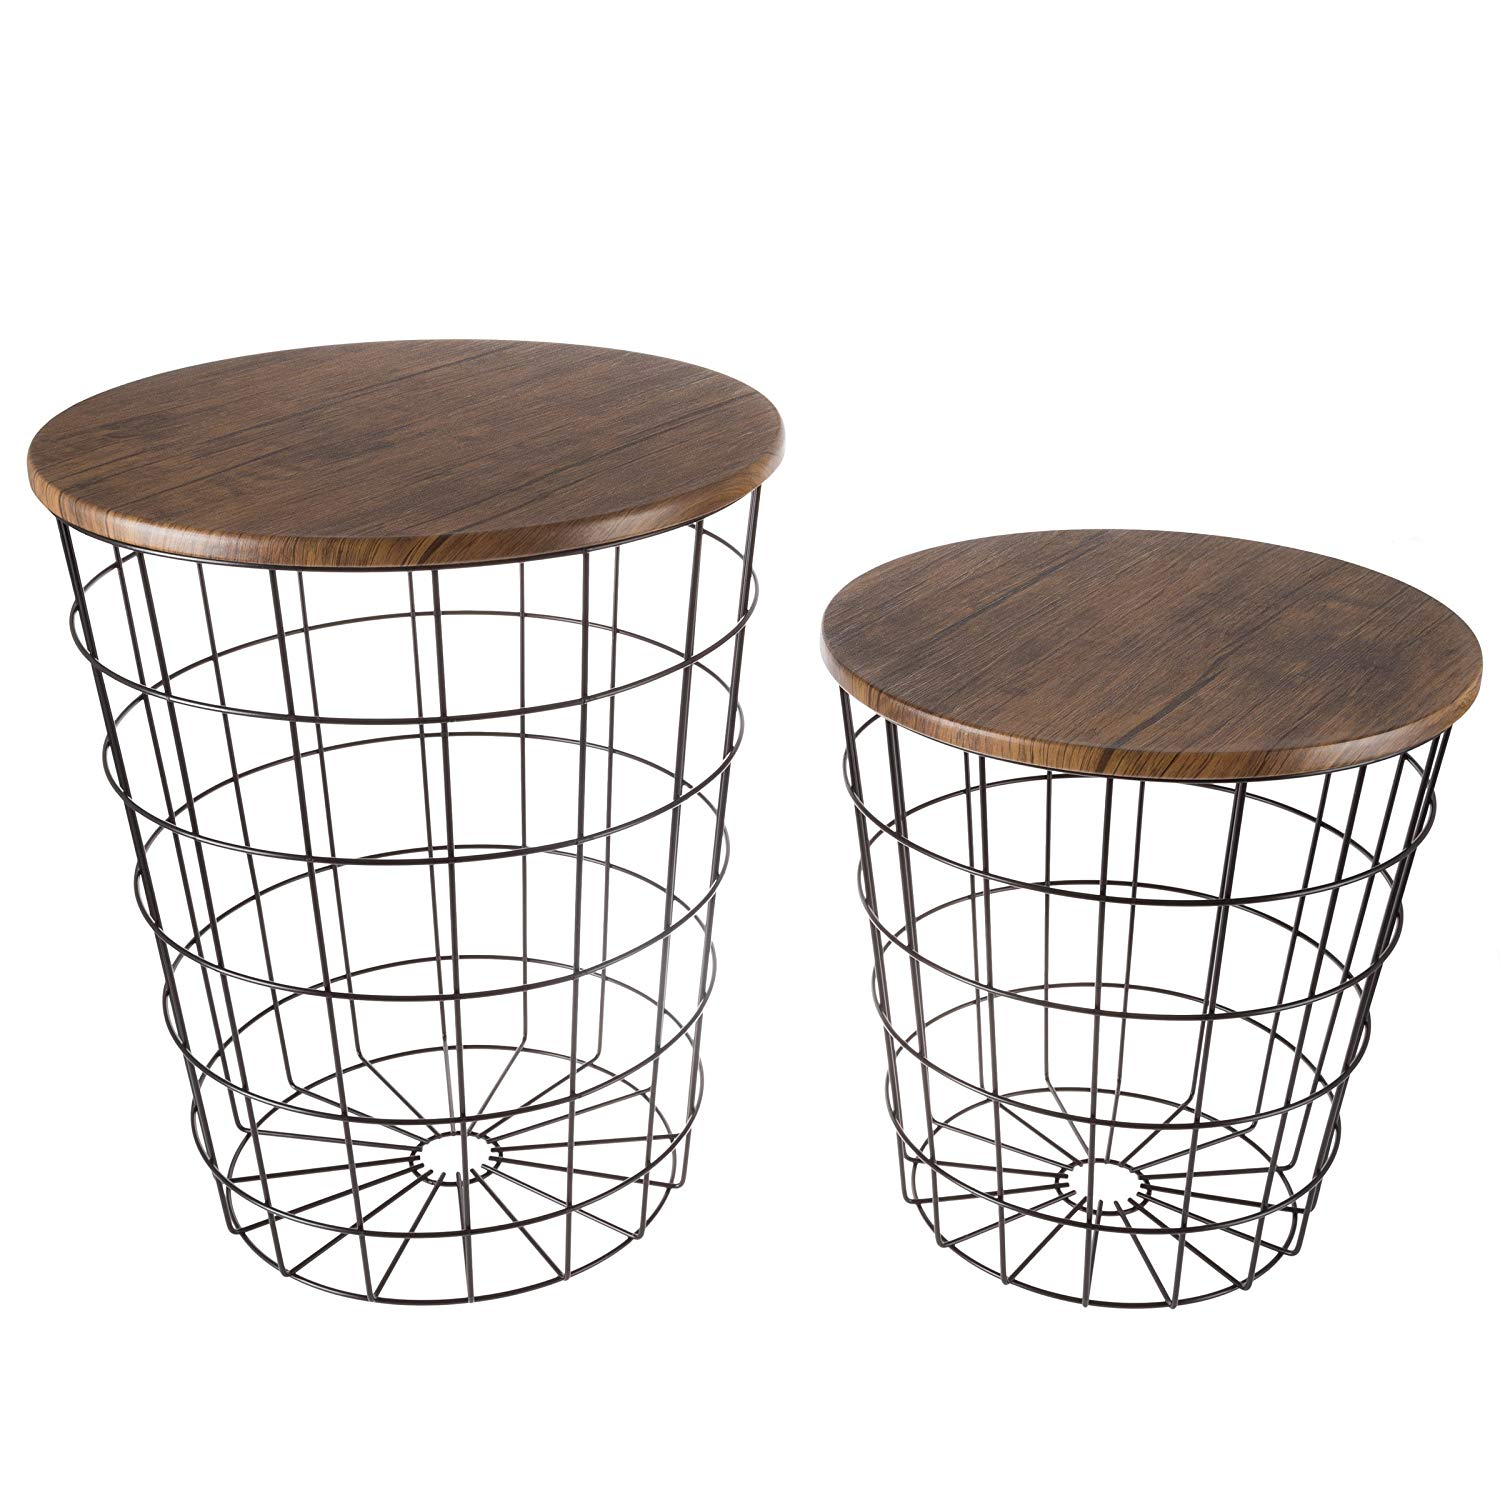 lavish home endtbl set nesting end storage wood accent side table convertible round metal basket veneer top tables black kitchen extra small console throne seat white plastic